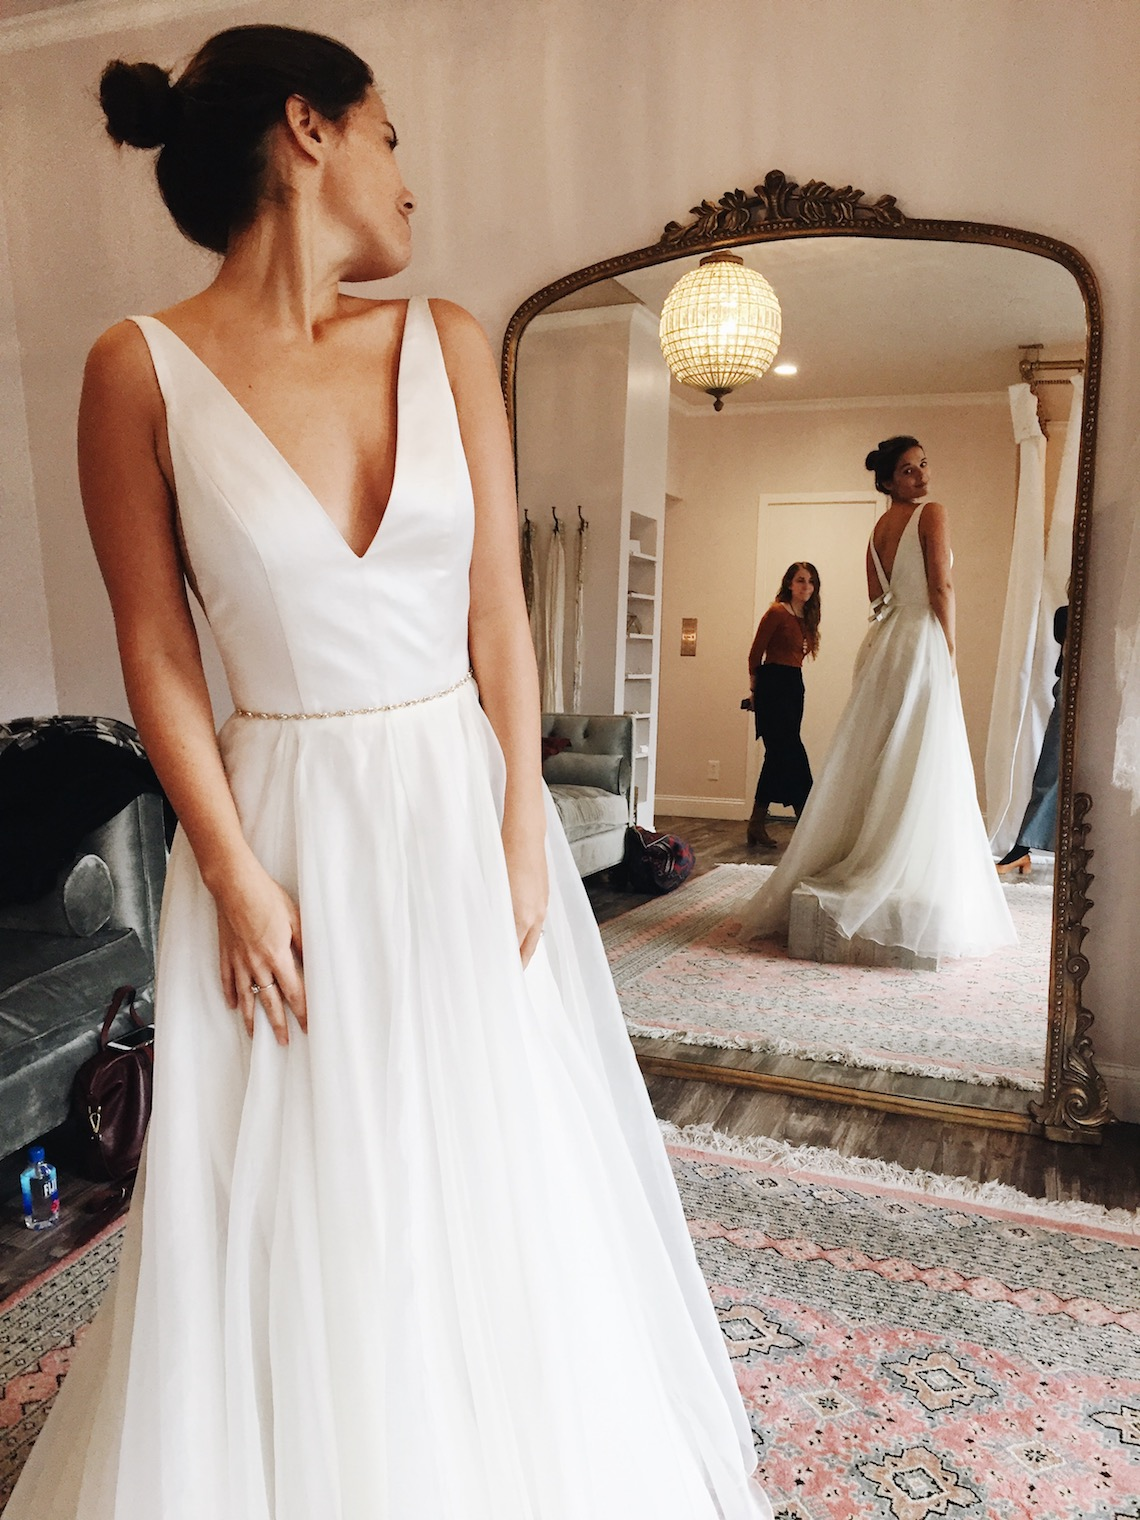 Real Bride Diary: Claire Eliza buys her dream wedding dress